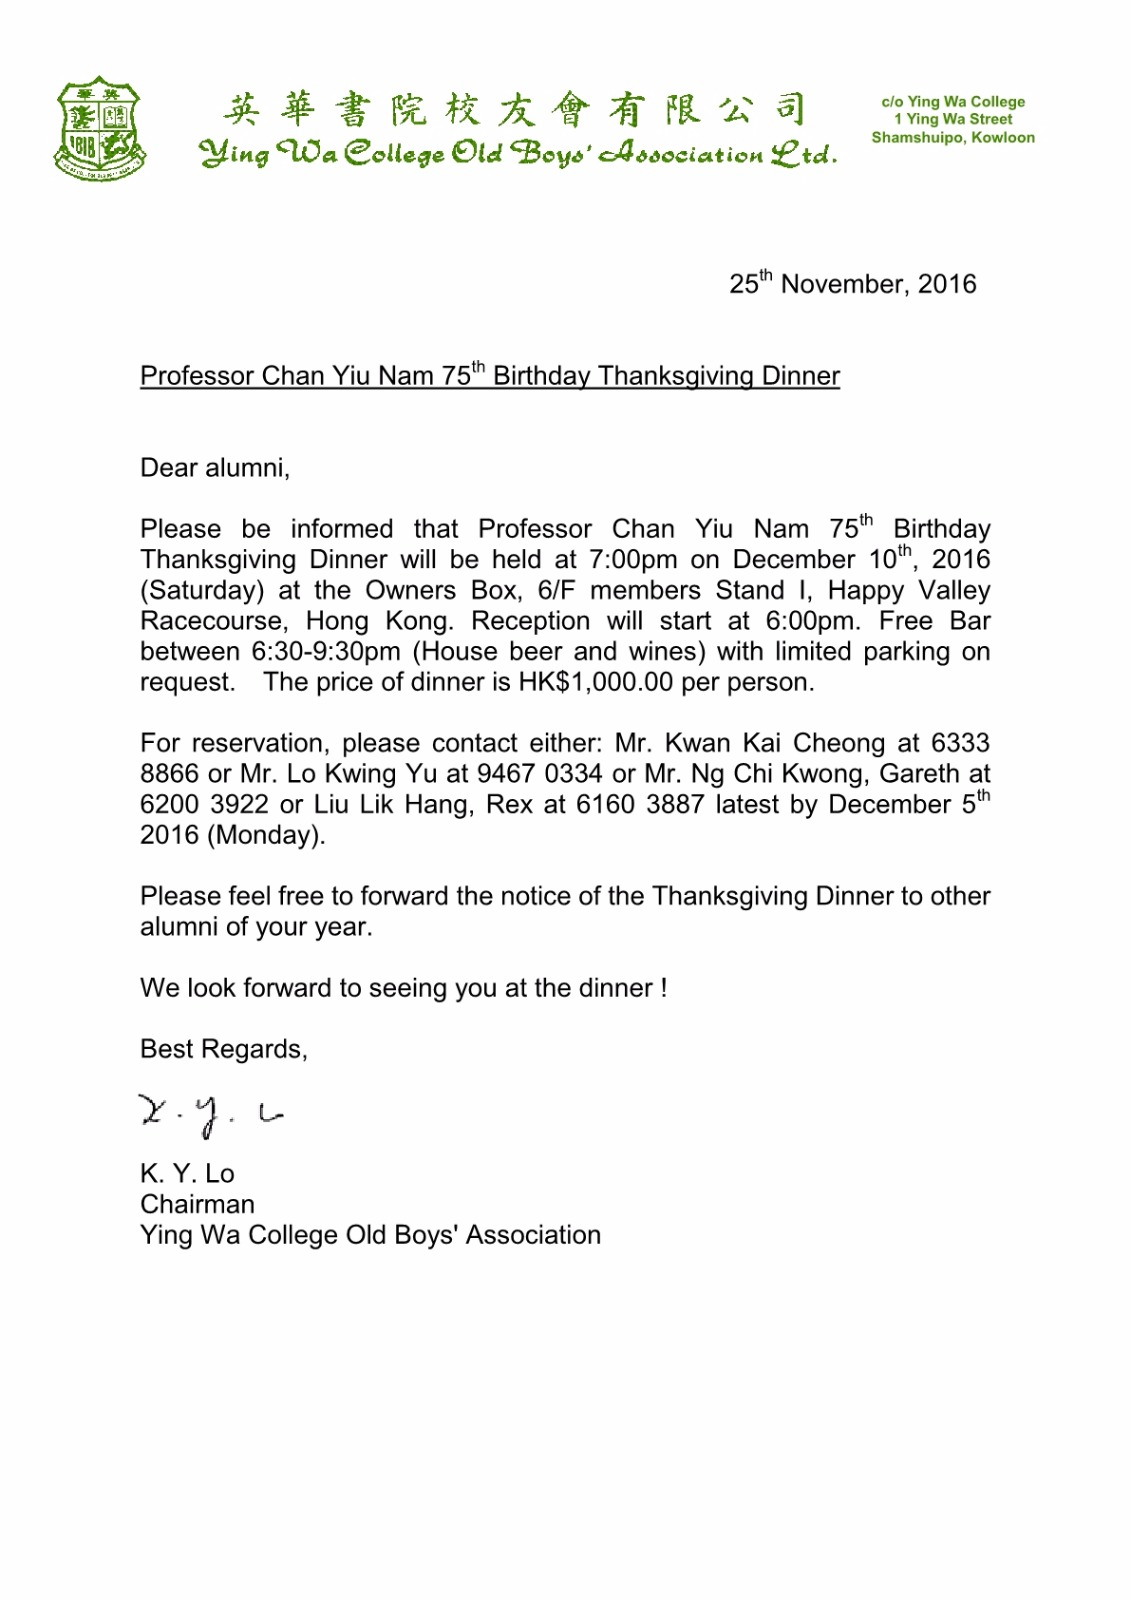 Invitation for Professor Chan Yiu Nam's 75th Birthday Thanksgiving Dinner